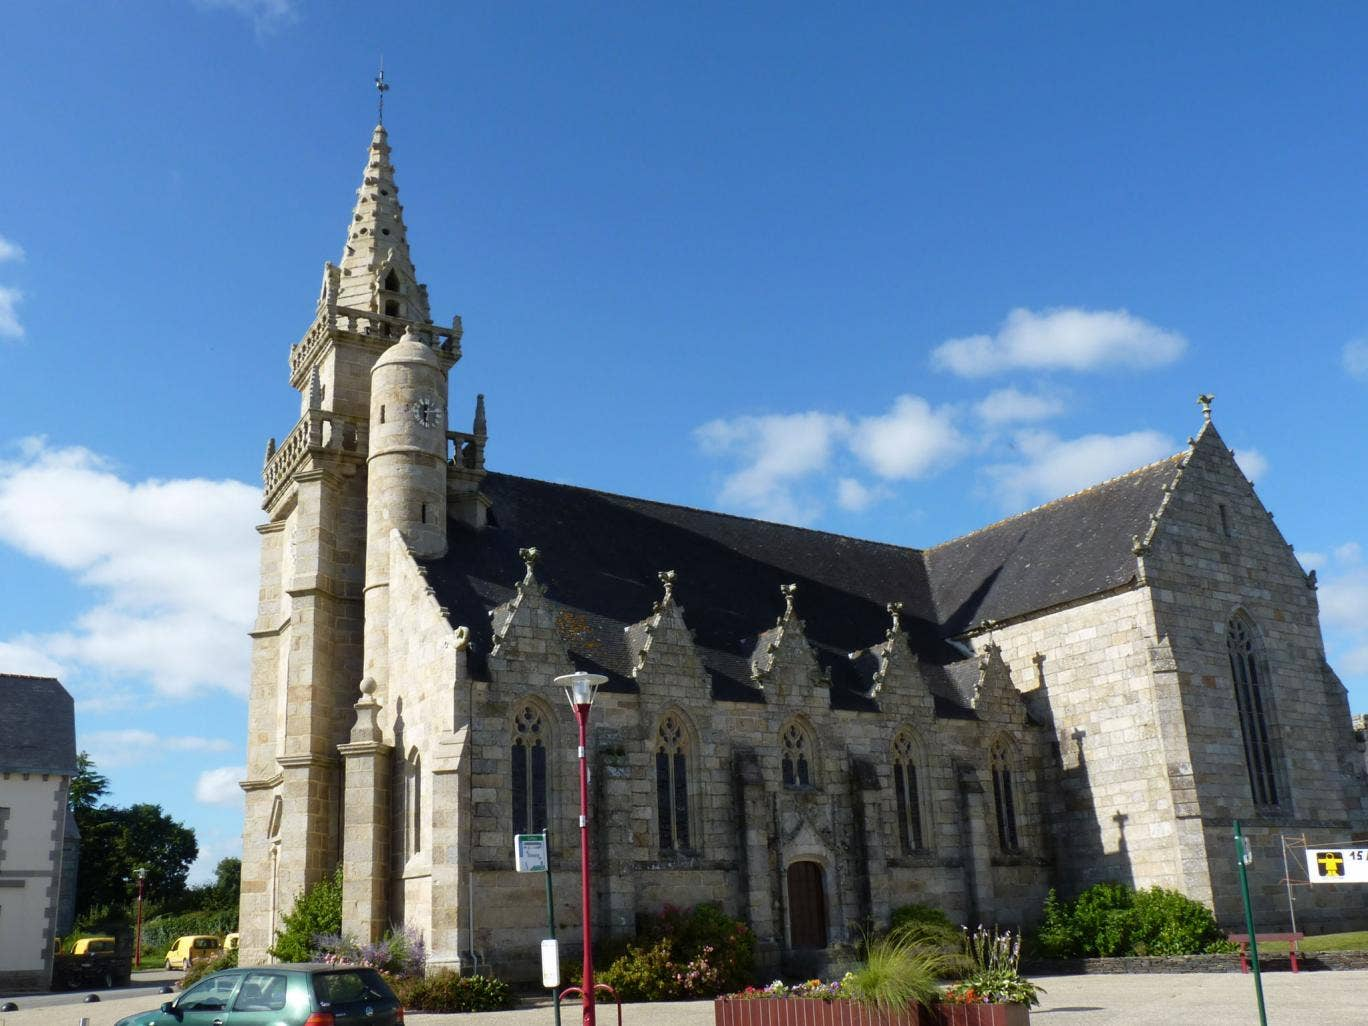 The Church of Saint-Pierre in the Brittany town of Mael-Carhaix, where a woman has been discovered to be living with the corpse of her long-dead mother